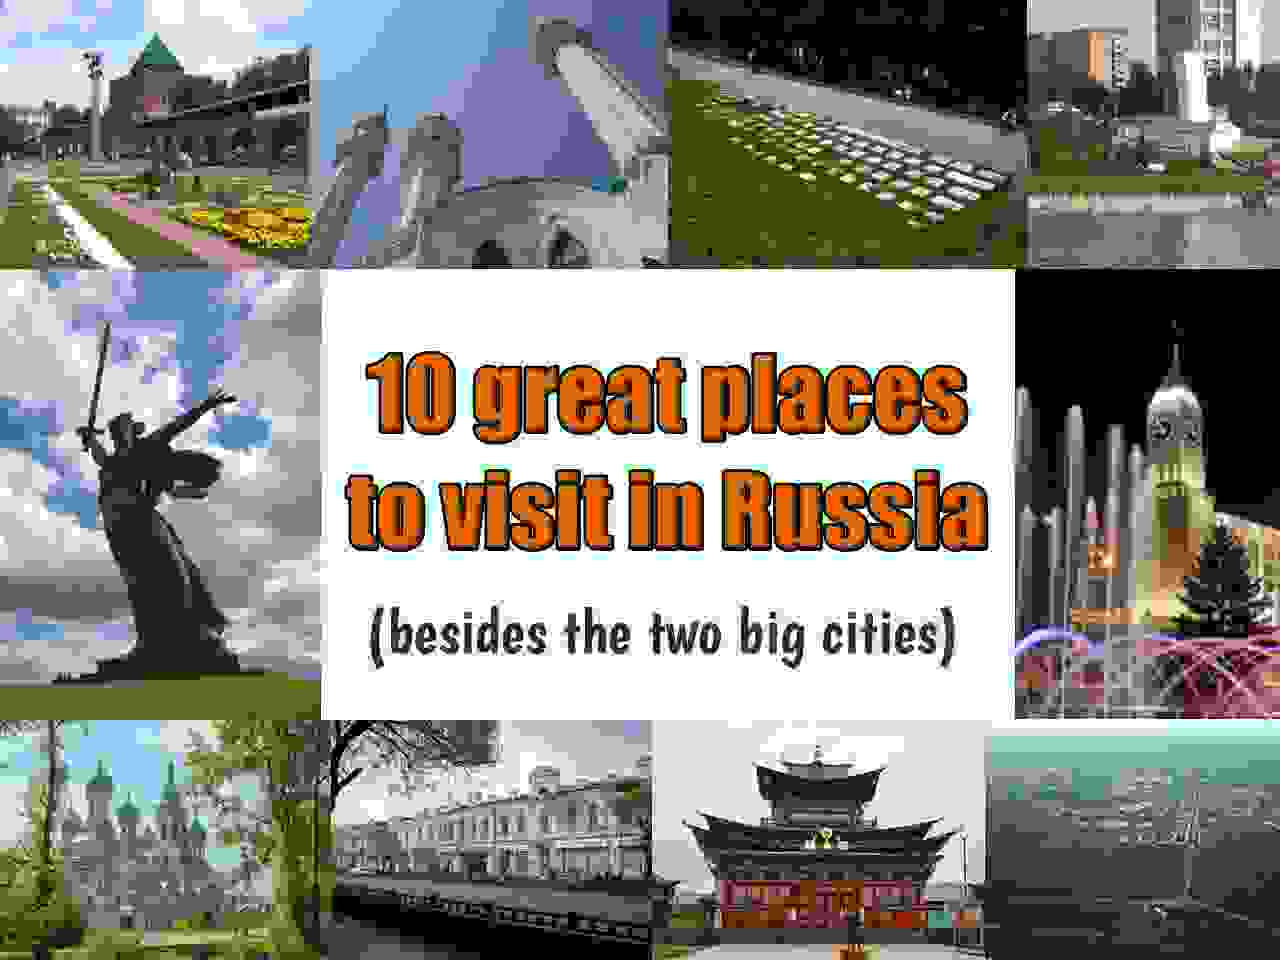 10 great places to visit in Russia